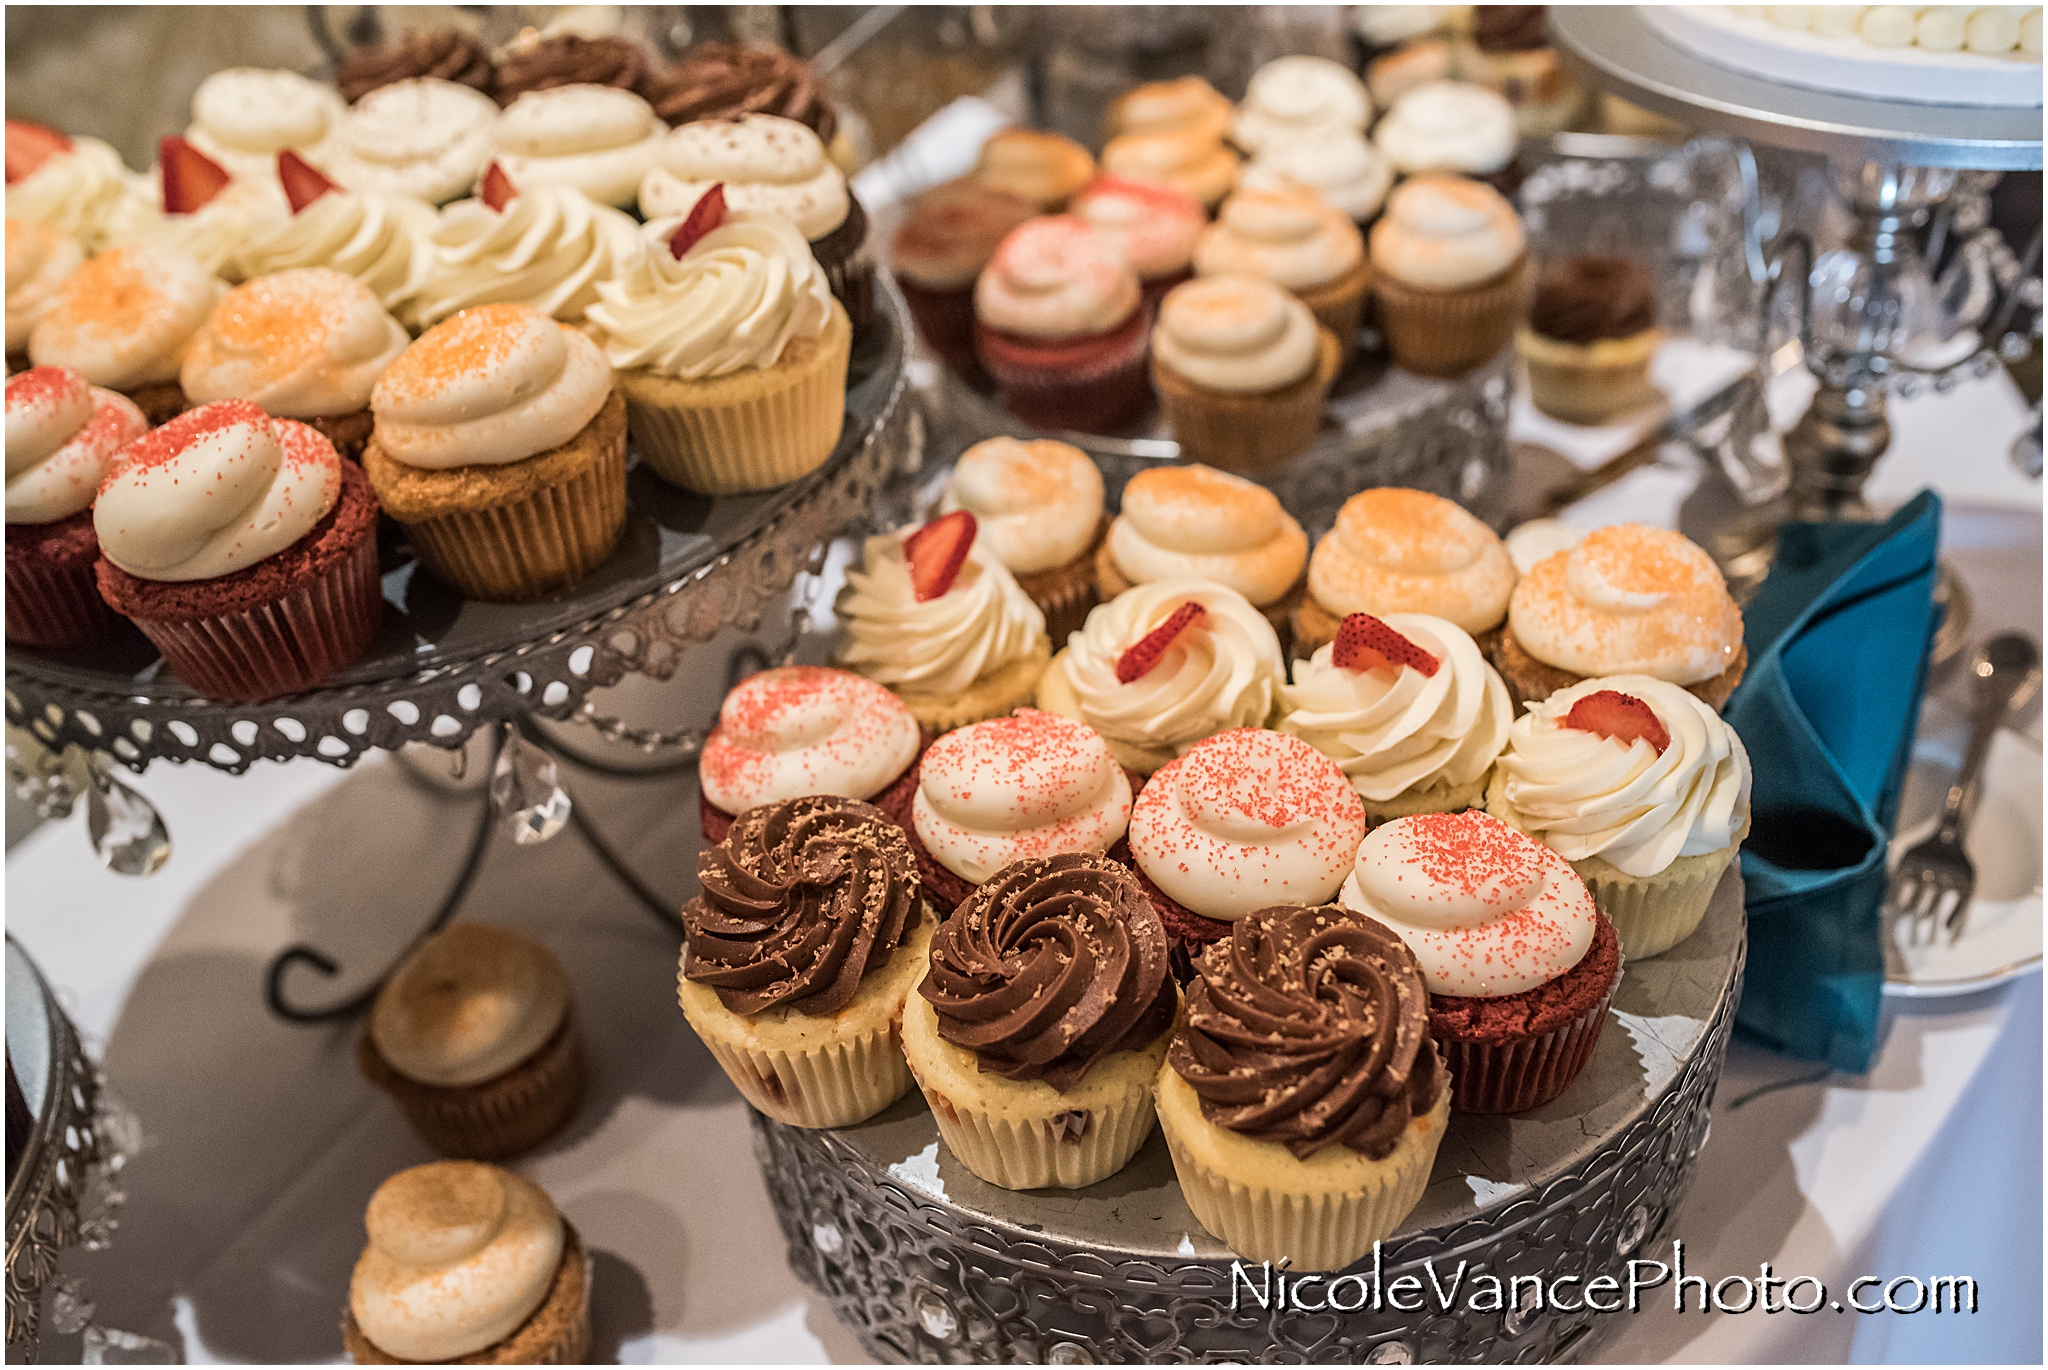 Cupcakes by Pearl's taste amazing!